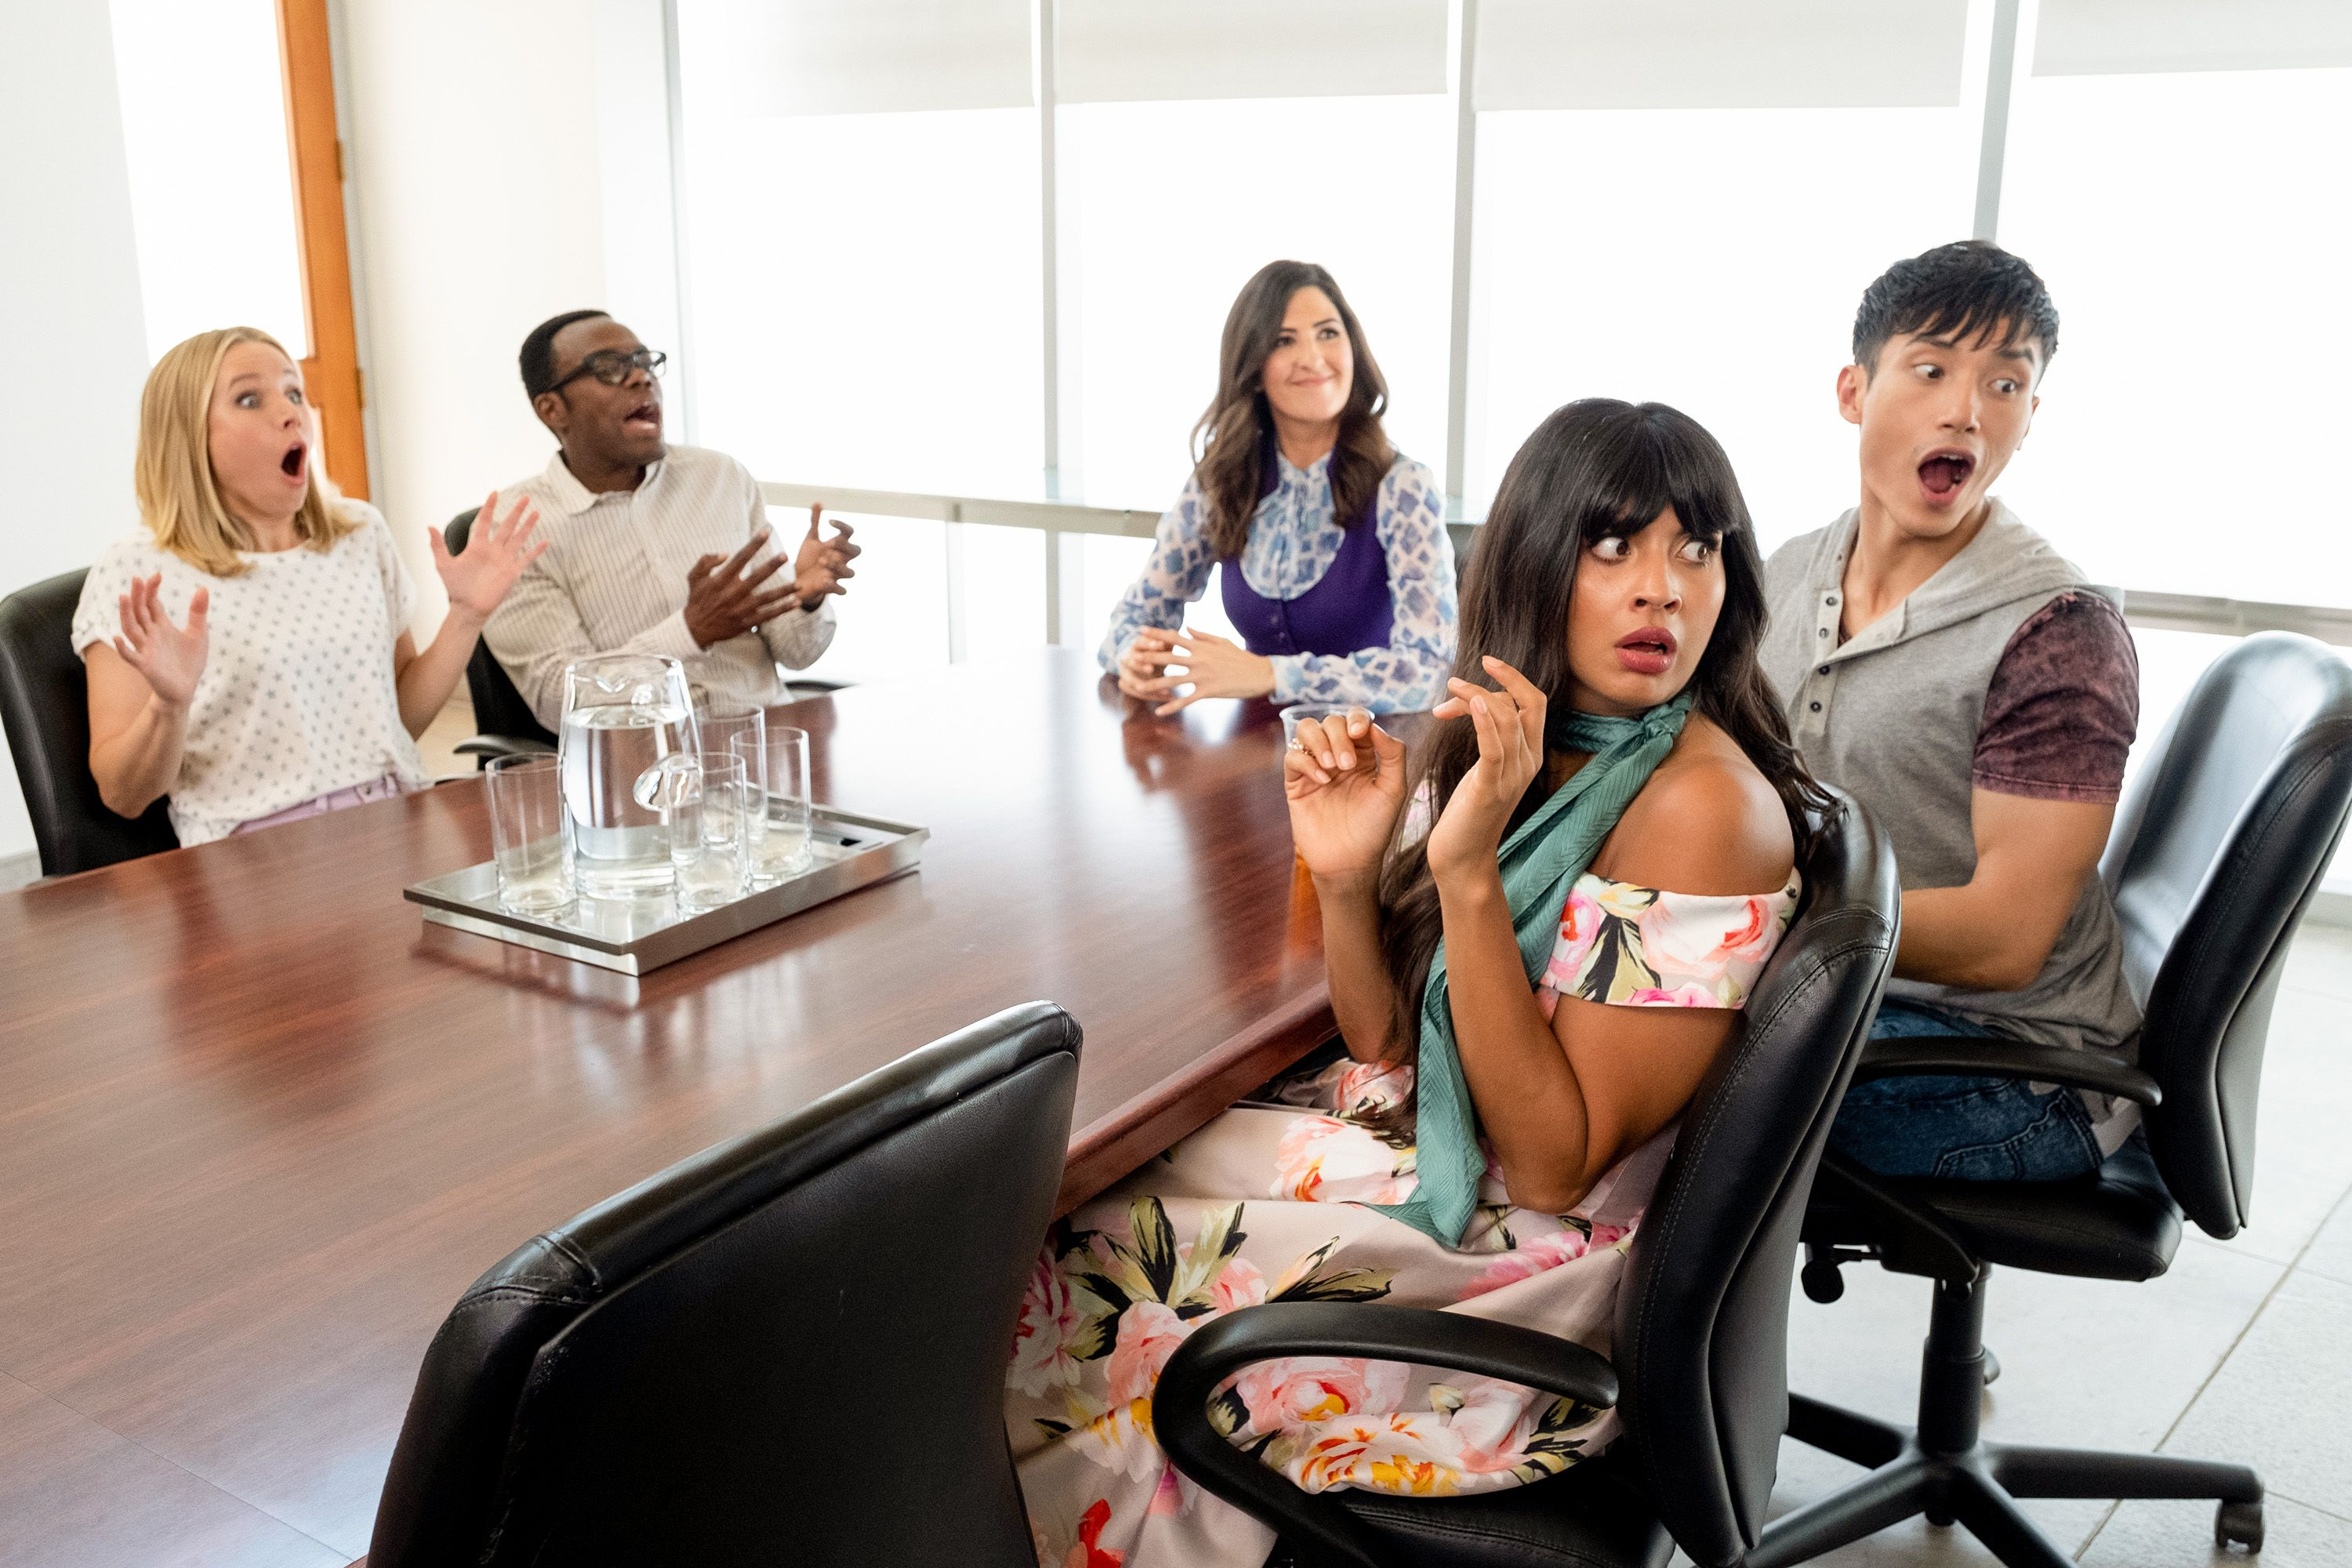 10 'The Good Place' Halloween Costumes - Janet, Eleanor, and